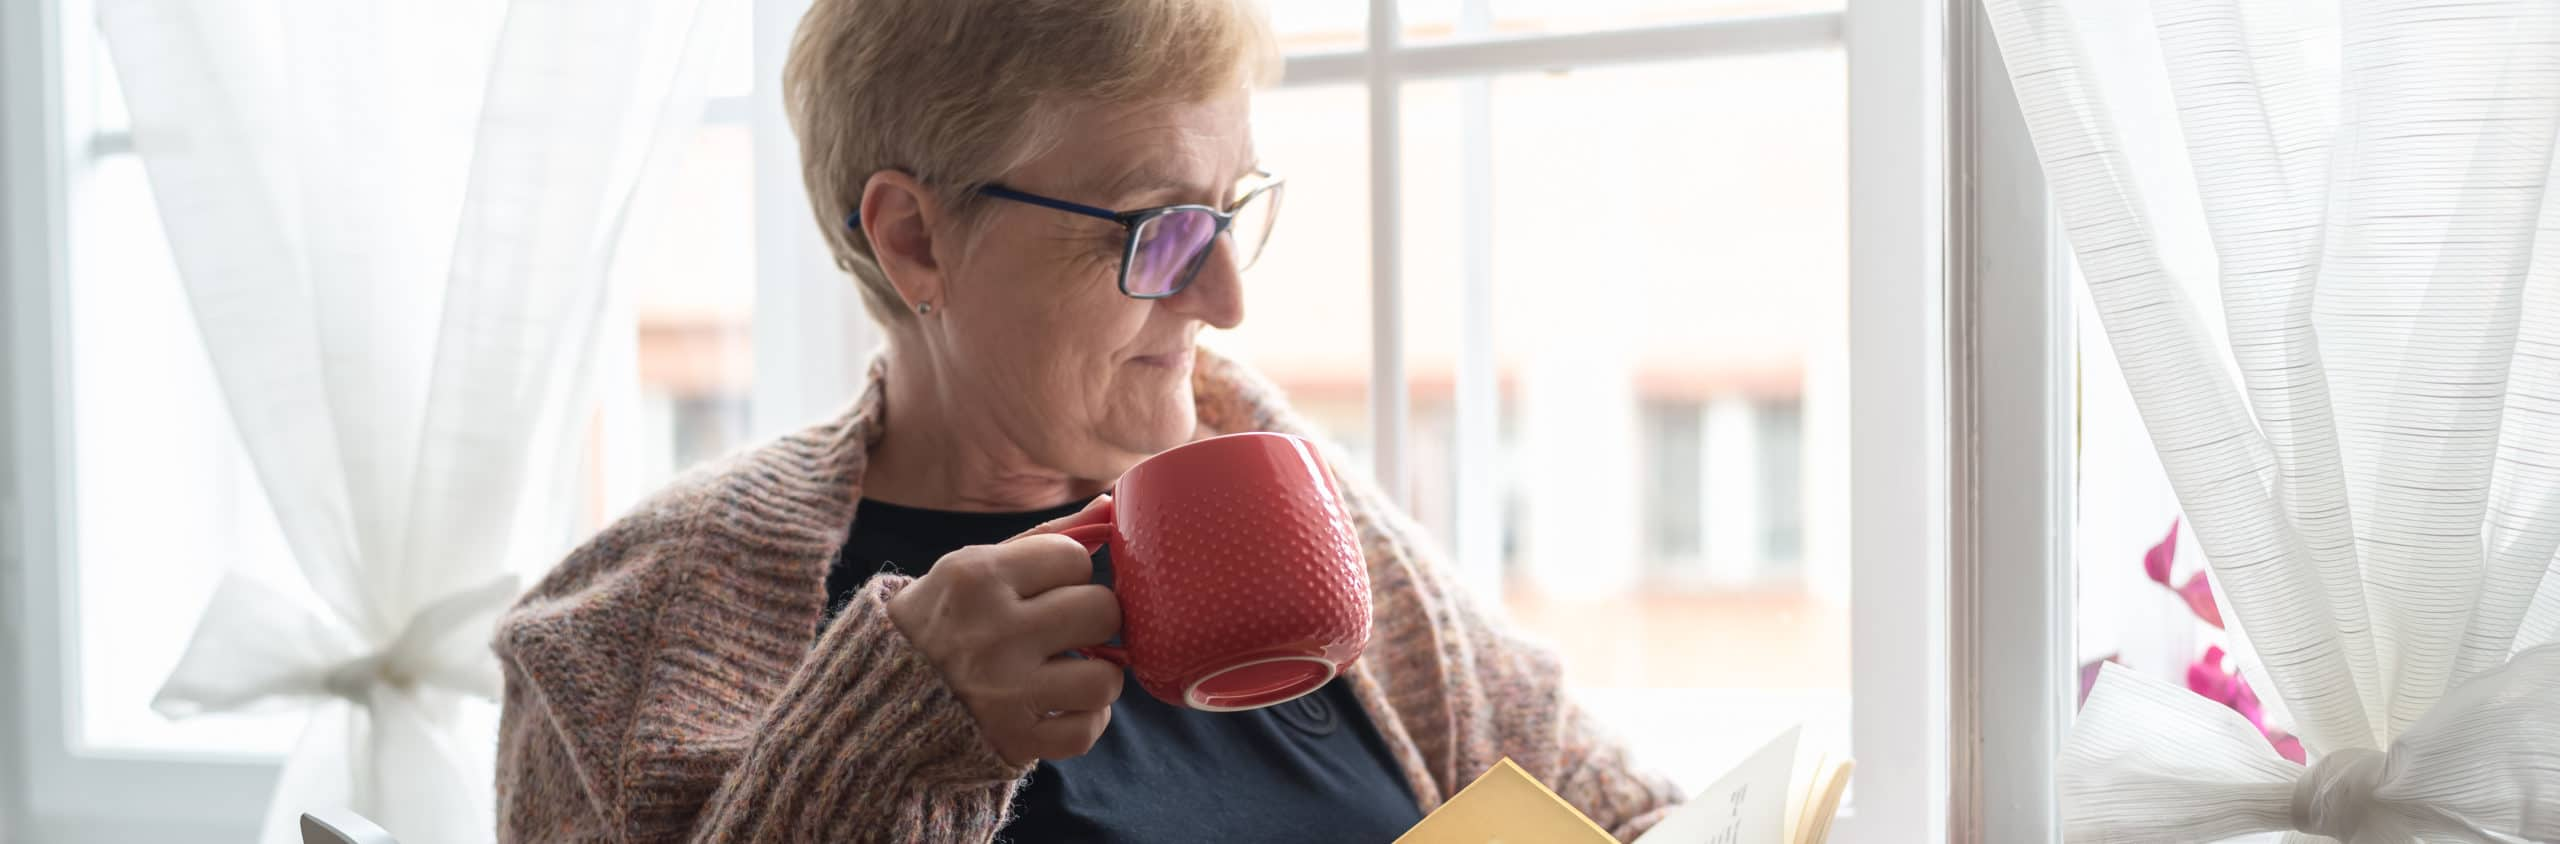 elderly woman reading book while sipping tea